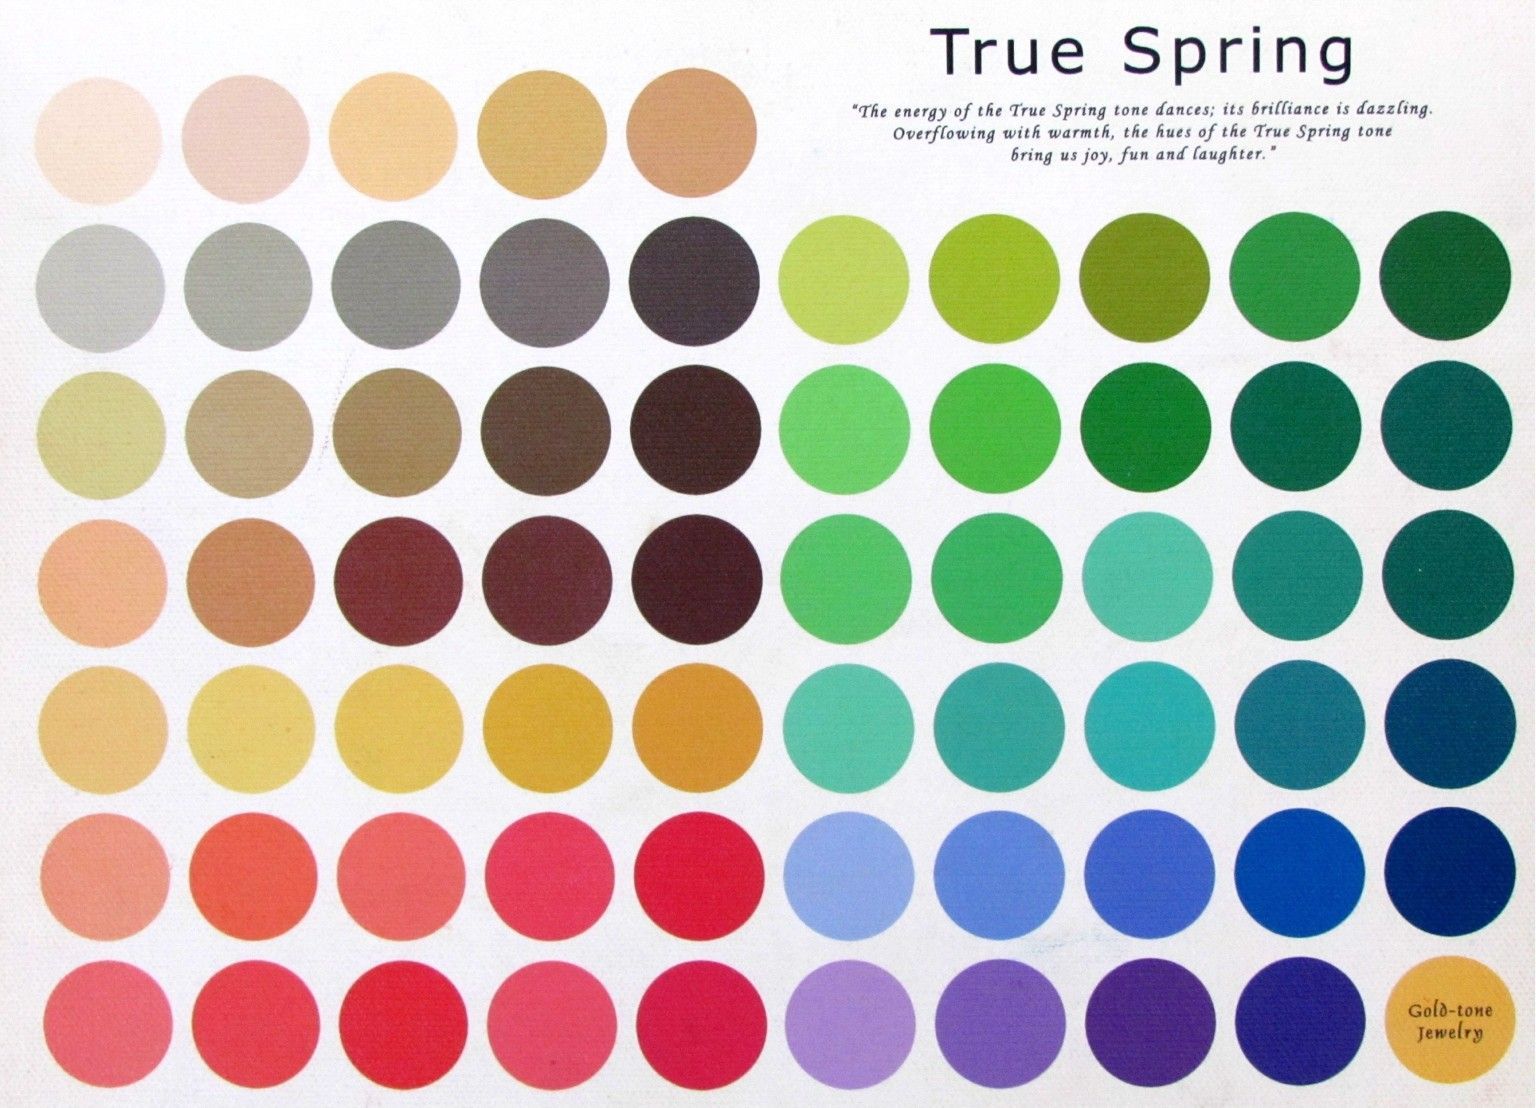 the true spring color pallet please do take in to consideration